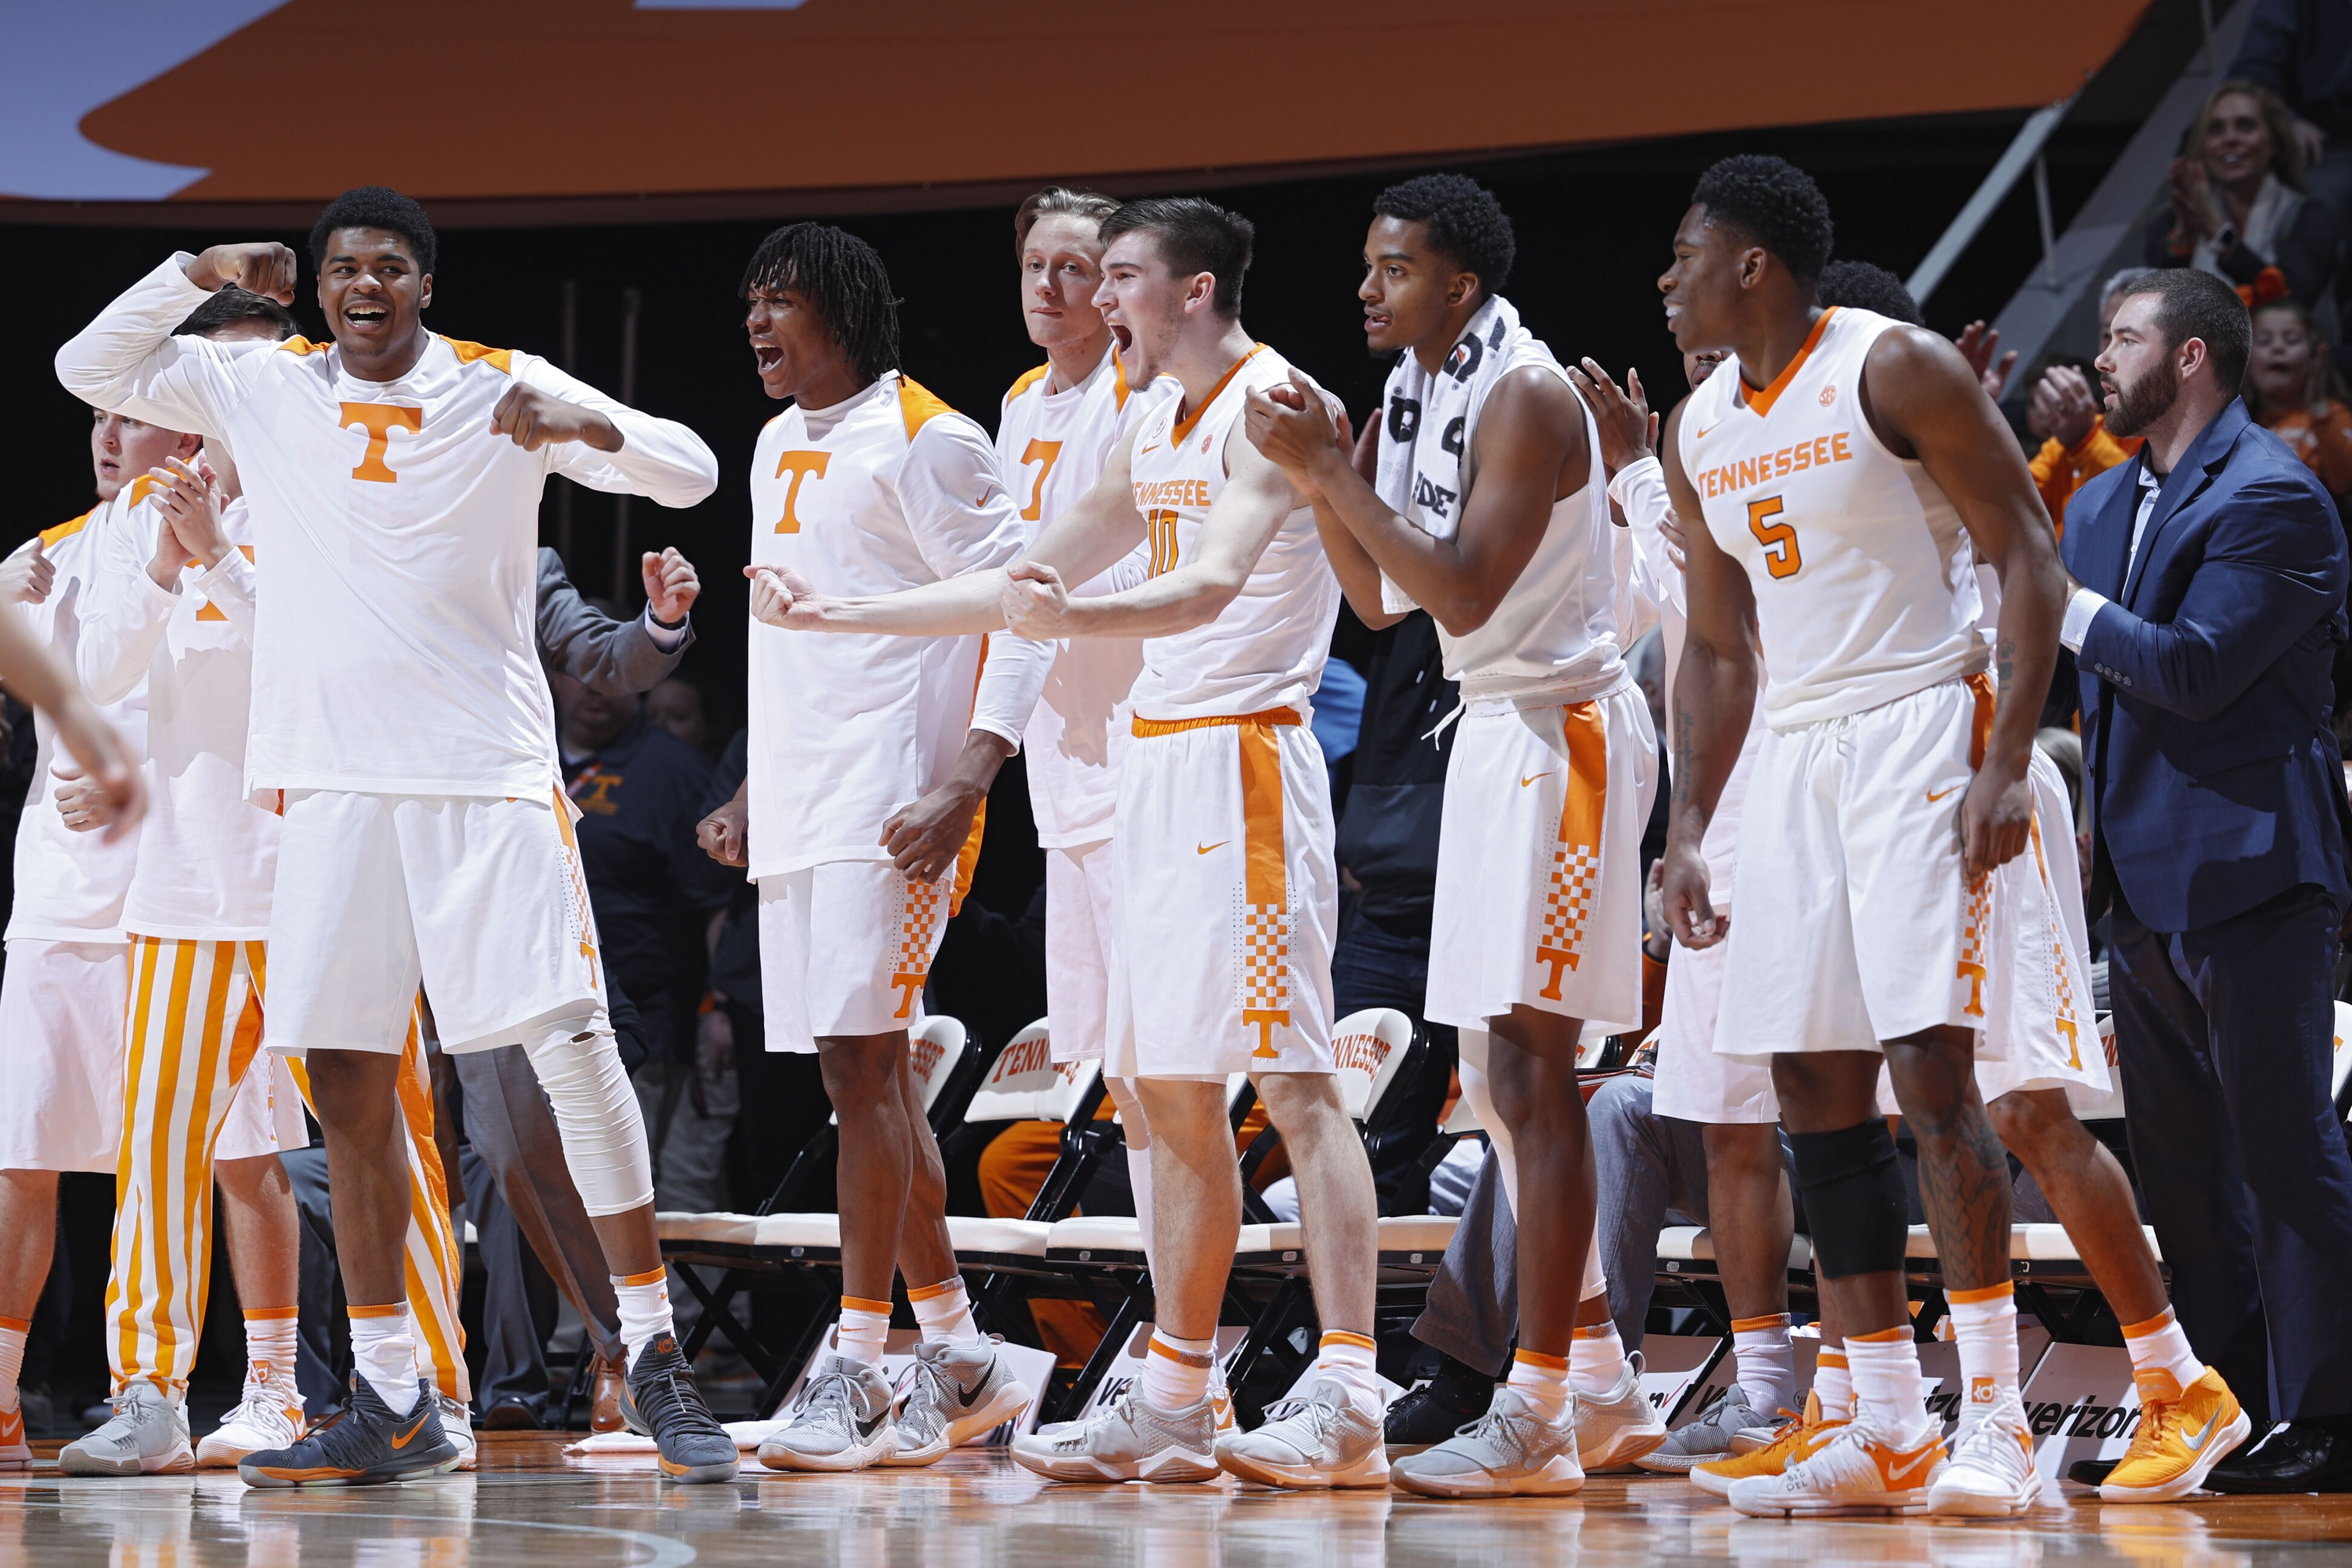 Uk Basketball: Tennessee Basketball: Vols Preview, Live Stream